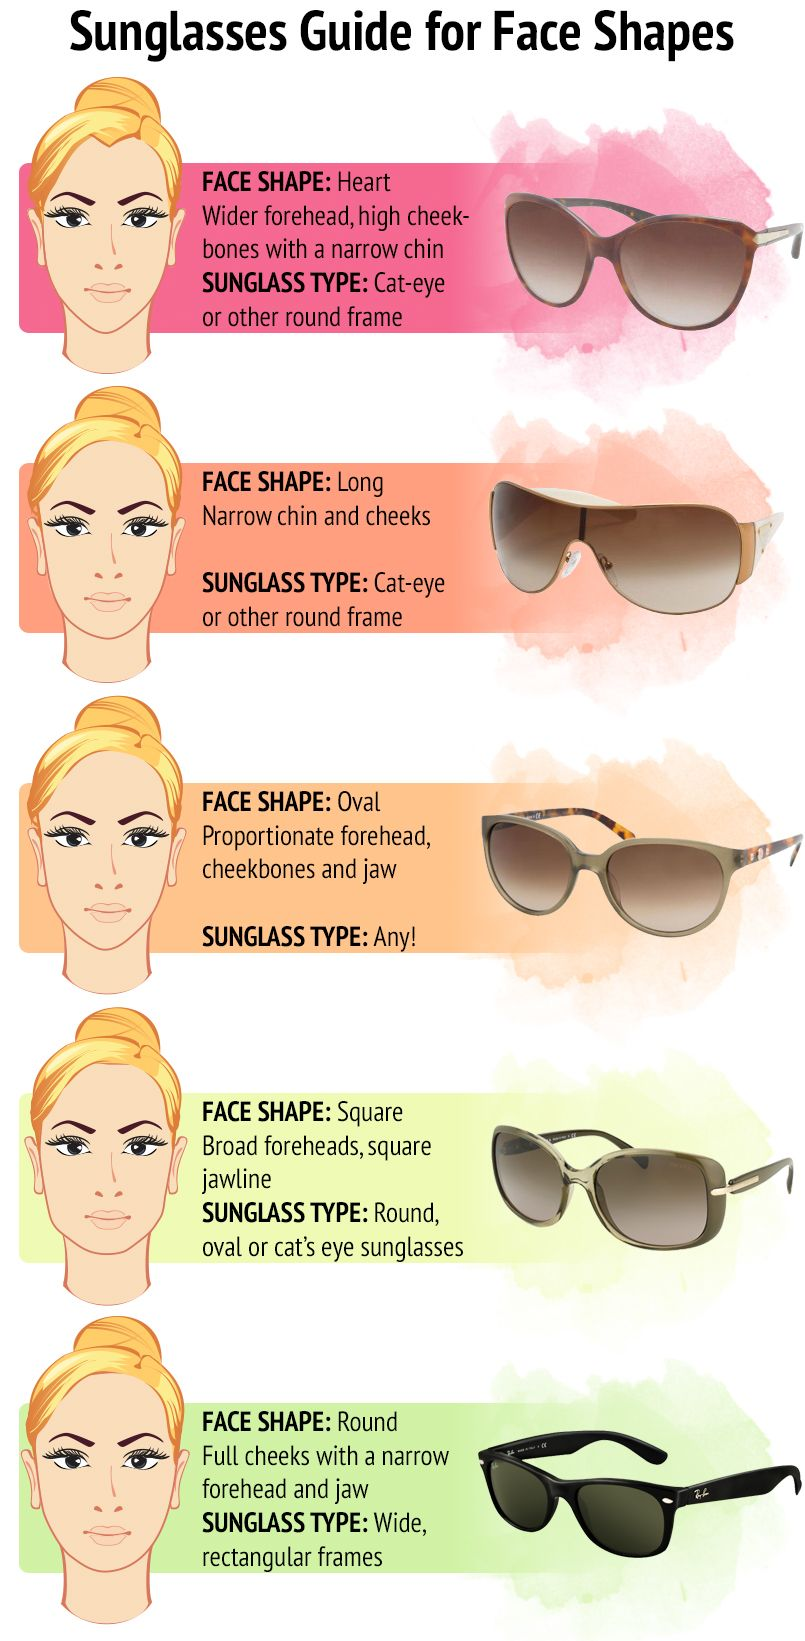 Sunglasses Guide Face Shapes #Infographics